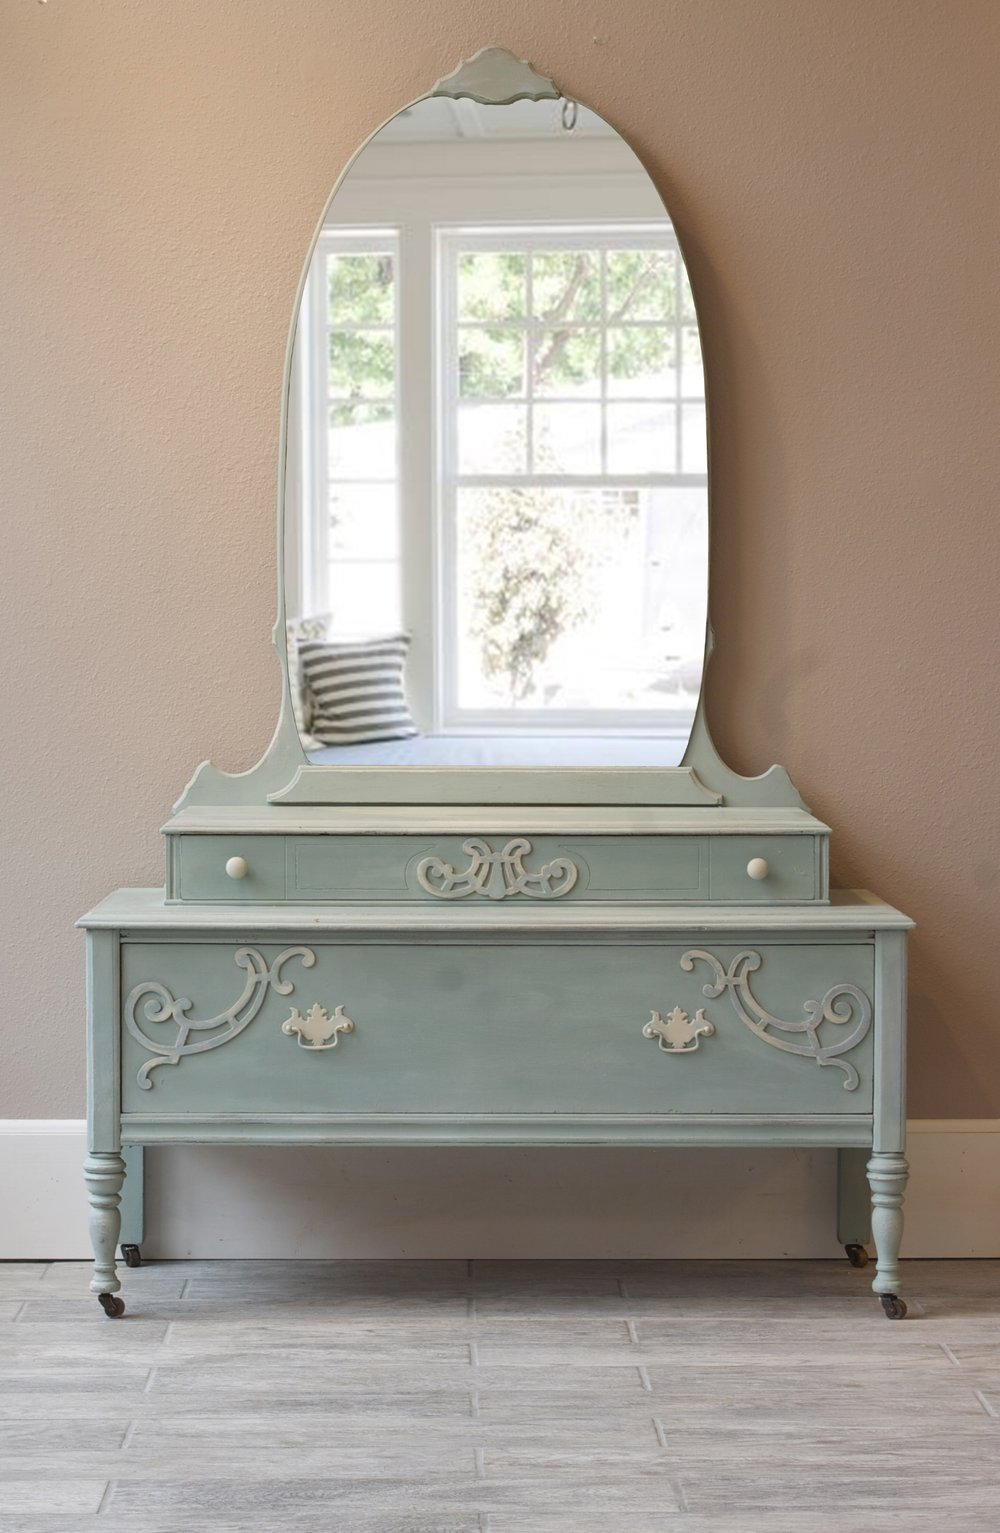 """Gorgeous Victorian vanity finished using 4-color layered process. Colors used: Annie Sloan Chalk Paint® in French Linen, Old Ochre, Duck Egg, and Louis Blue. Hardware was finished using Old Ochre and Louis Blue. Slightly distressed finish. Sealed with clear wax.  Dimensions: Length - 44"""", Depth - 18"""", Height - 69""""/26"""" without mirror.  $250.00 SOLD"""